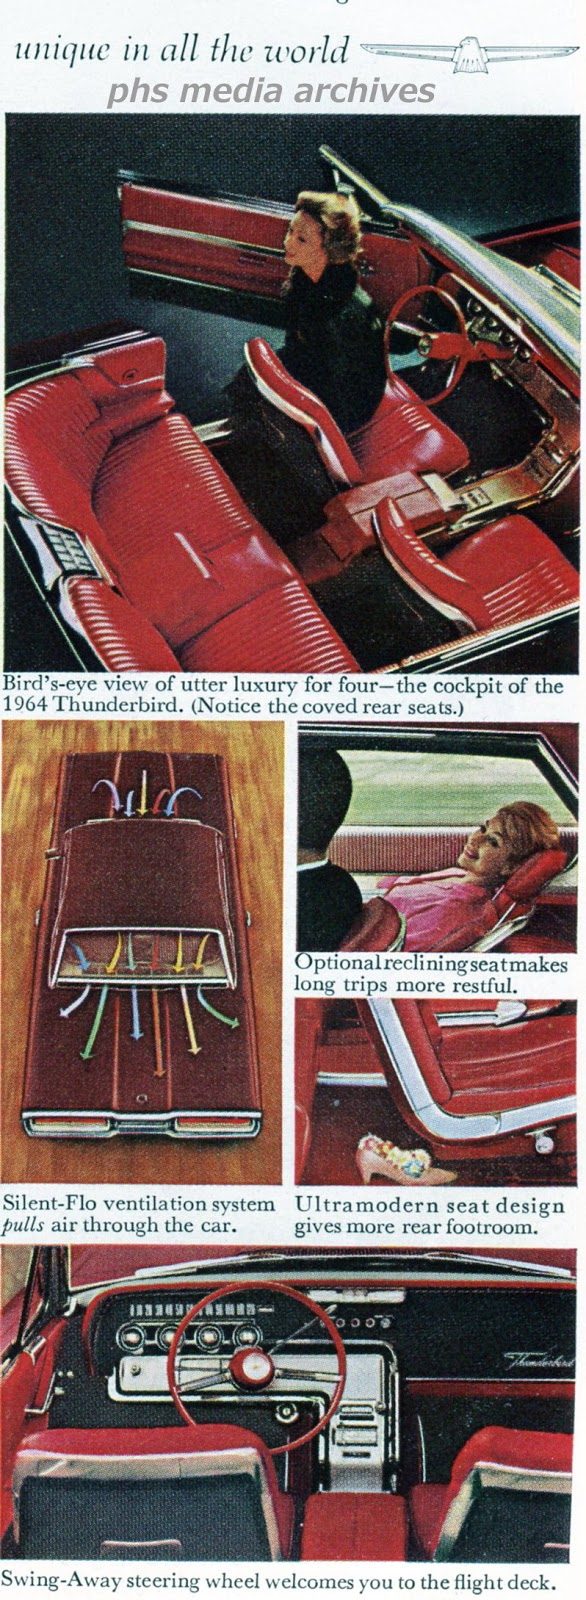 Year In Review 1964 Thunderbird Phscollectorcarworld T Bird Wiring Diagram Seat Ford Was Trying To Set The Pace For Personal Luxury Cars And Didnt Heed Bob Tasca High Performance Additions